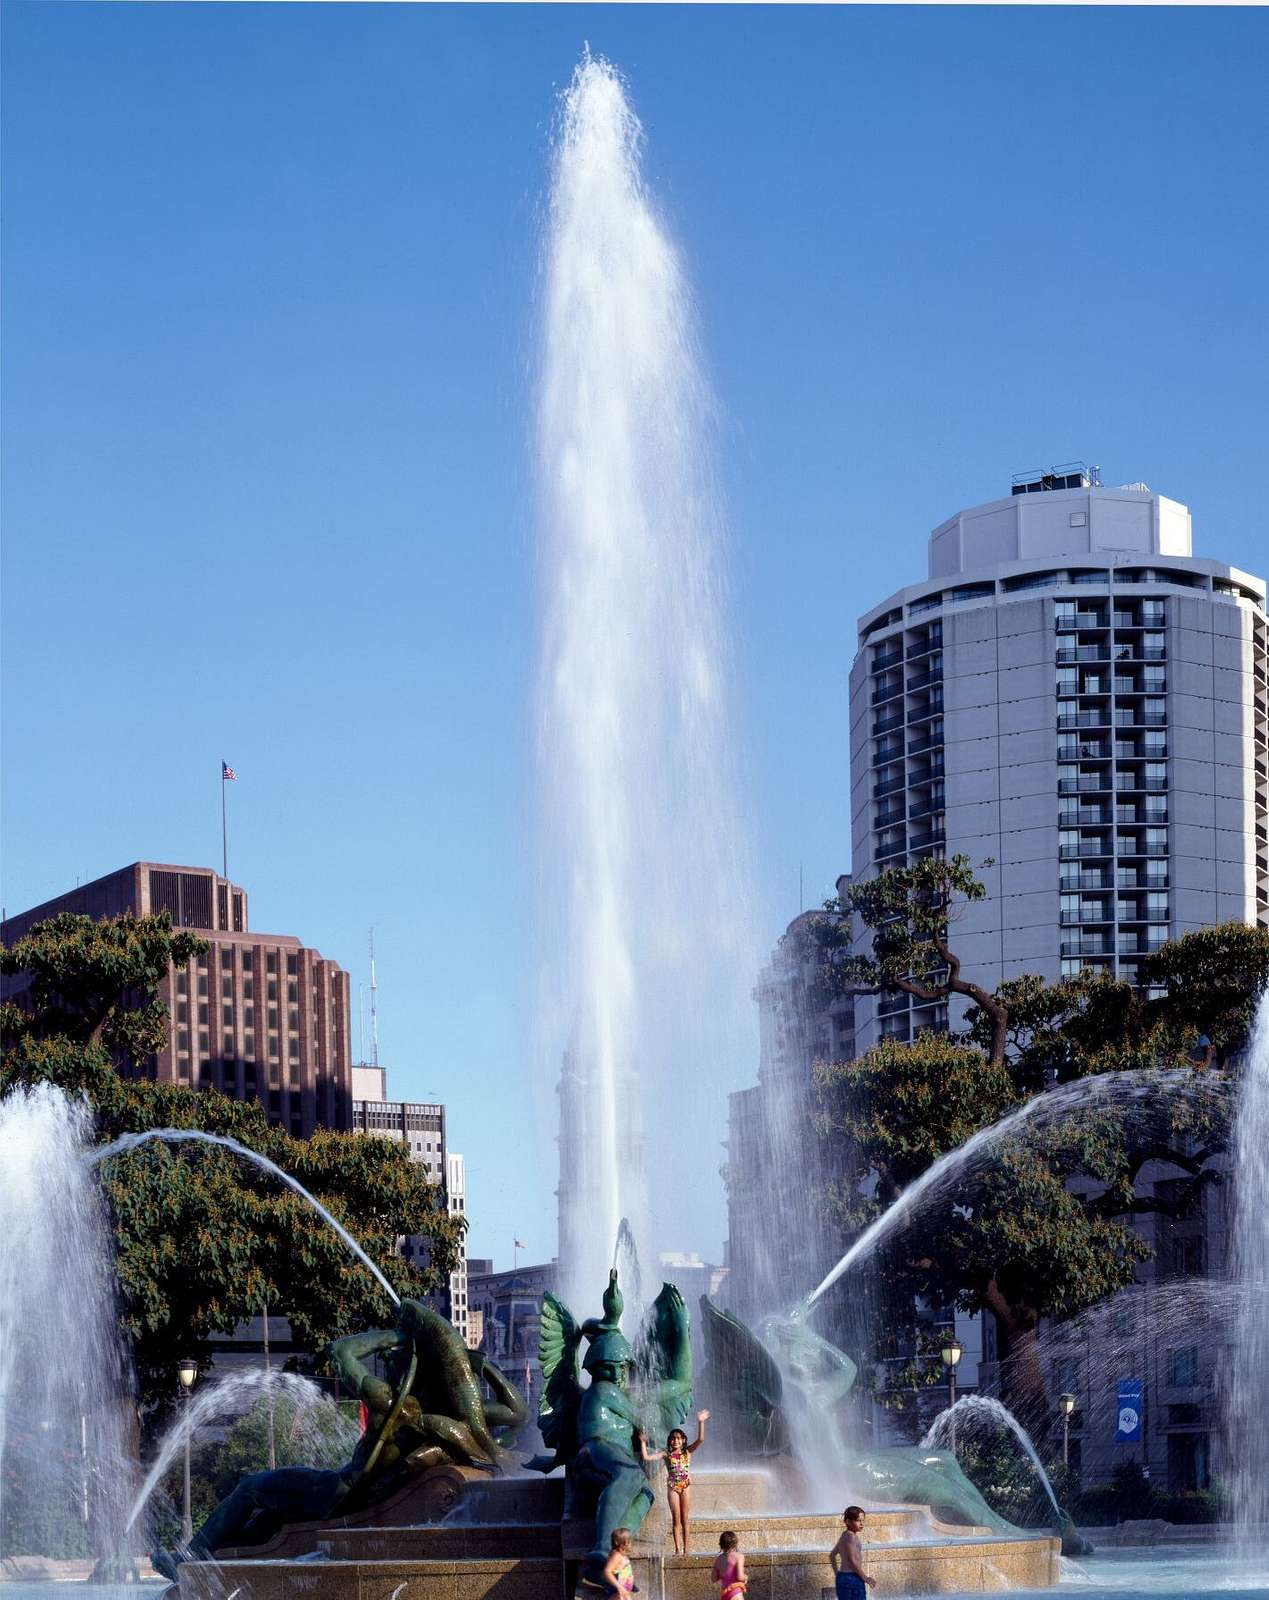 Swann Memorial Fountain (also known as the Fountain of the Three Rivers) is a fountain sculpture located in the center of Logan Circle, Philadelphia, Pennsylvania